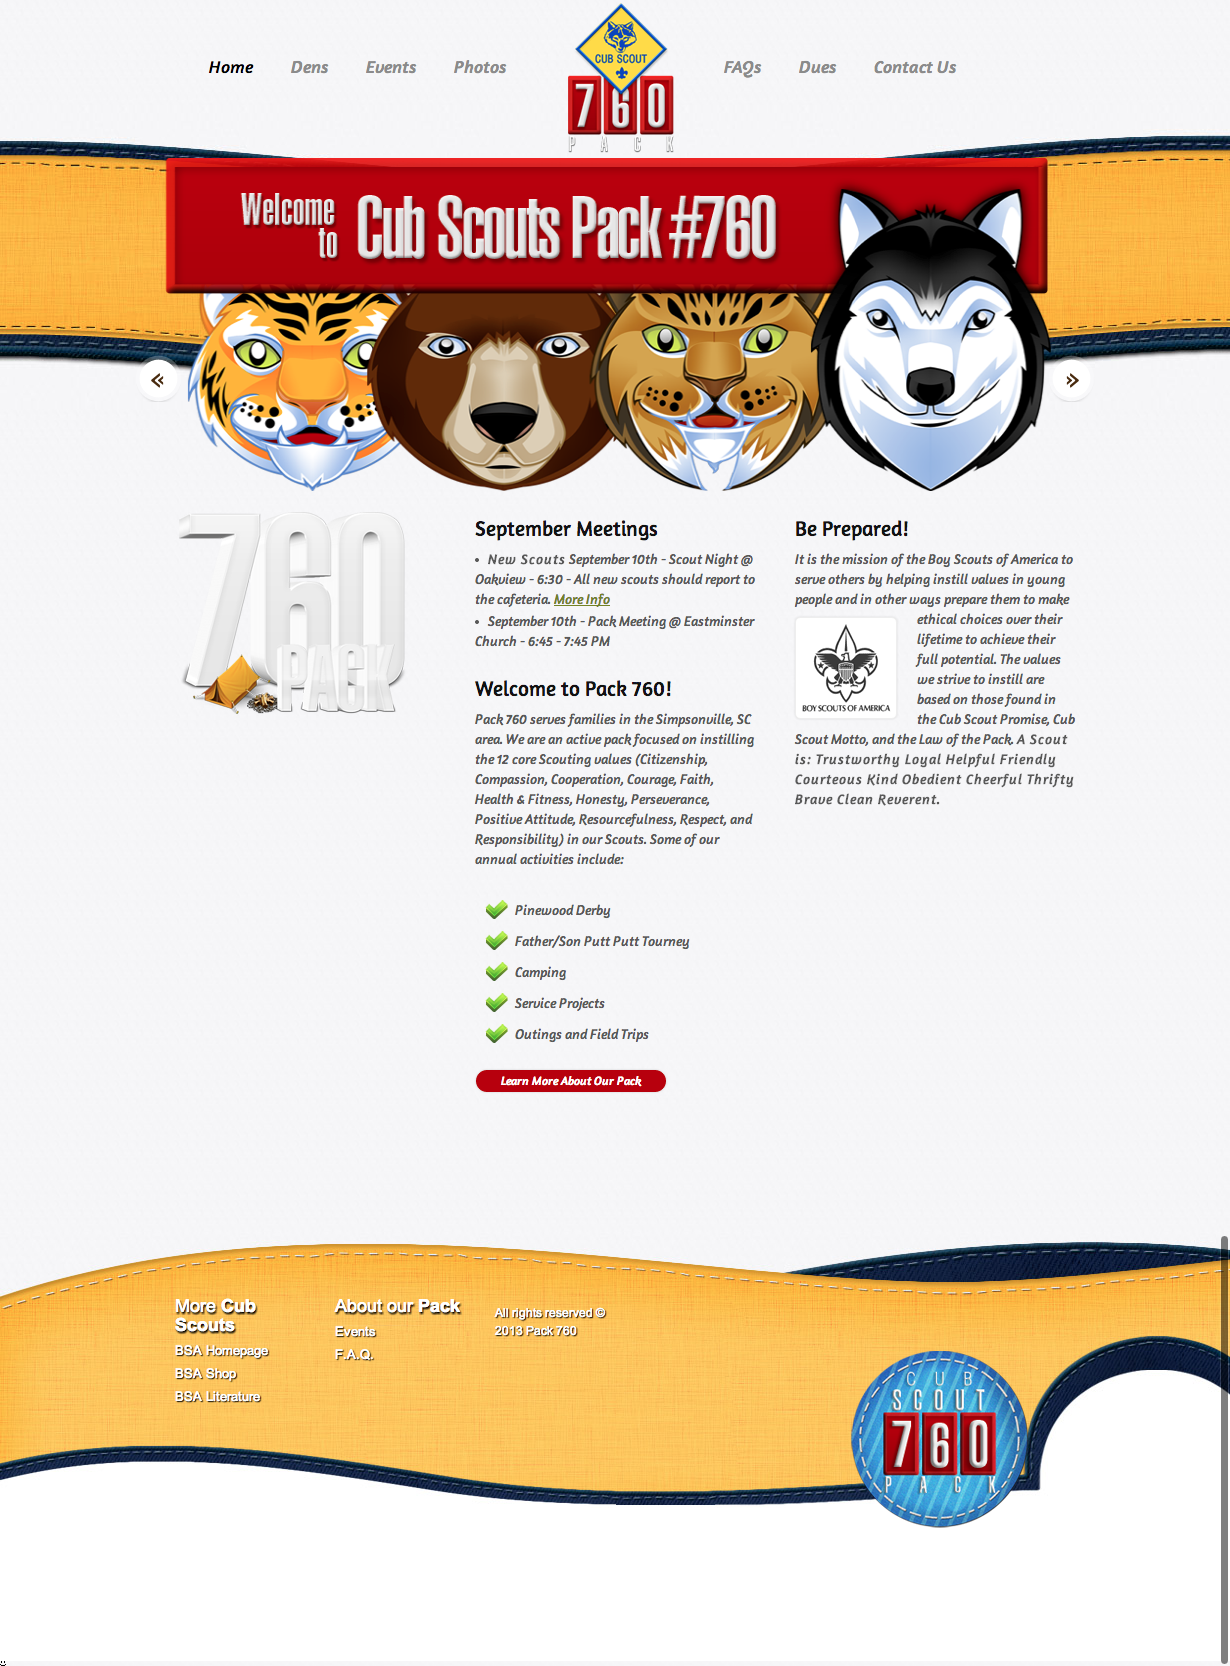 Web Design Cub Scouts Pack 760